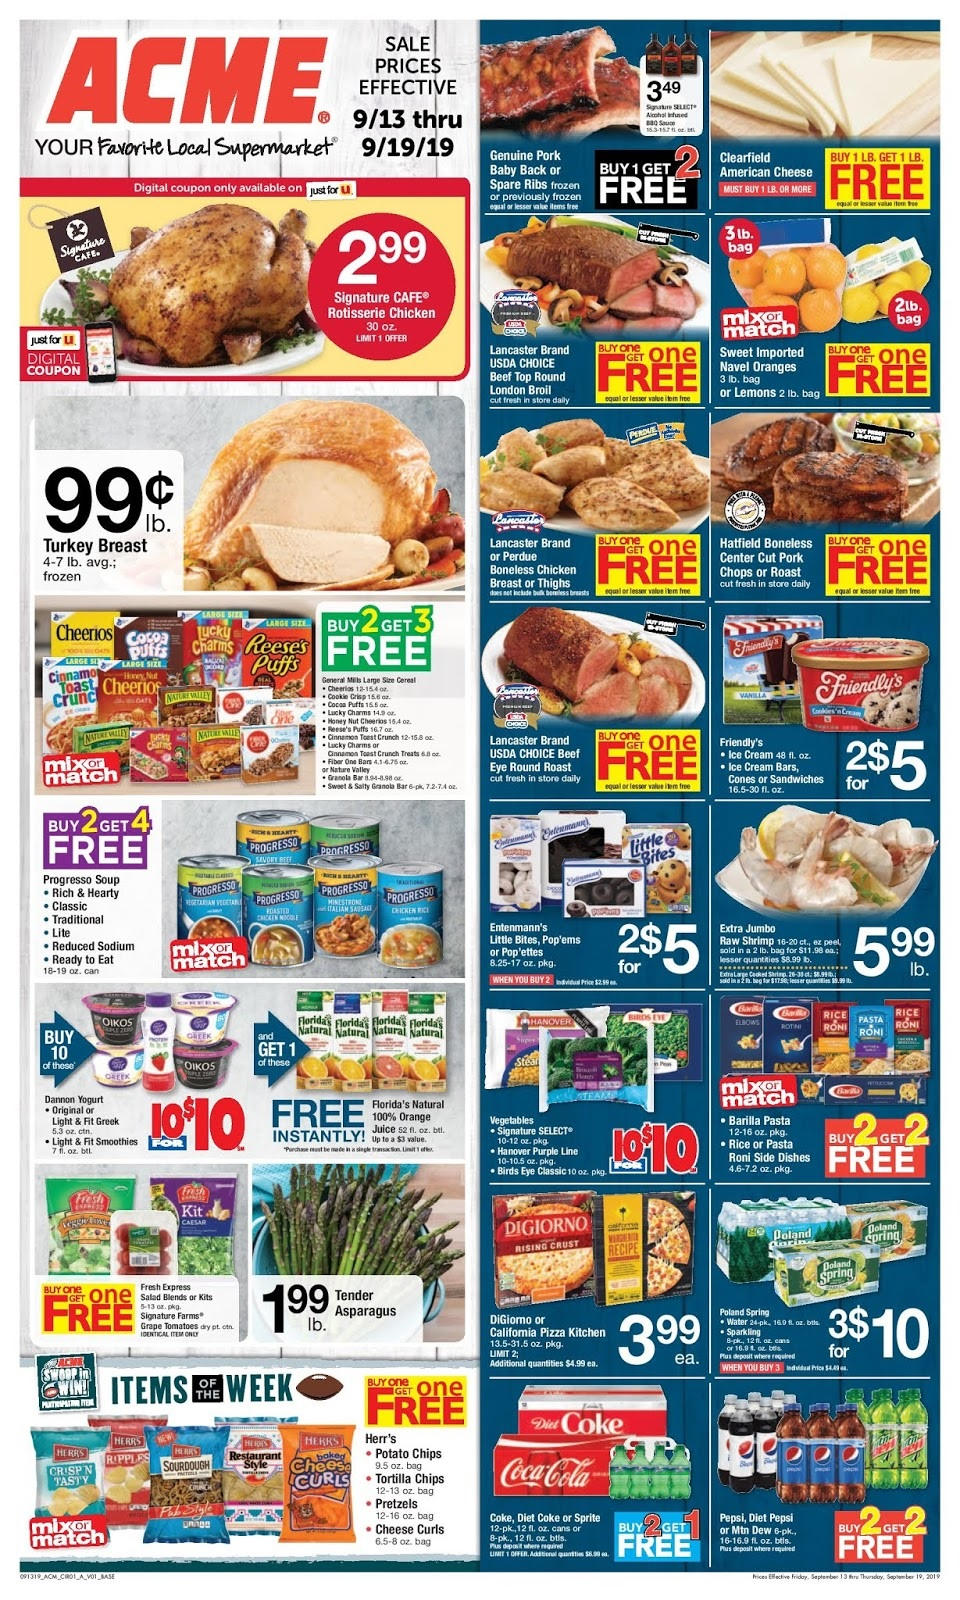 ⭐ Acme Weekly Ad 9/20/19